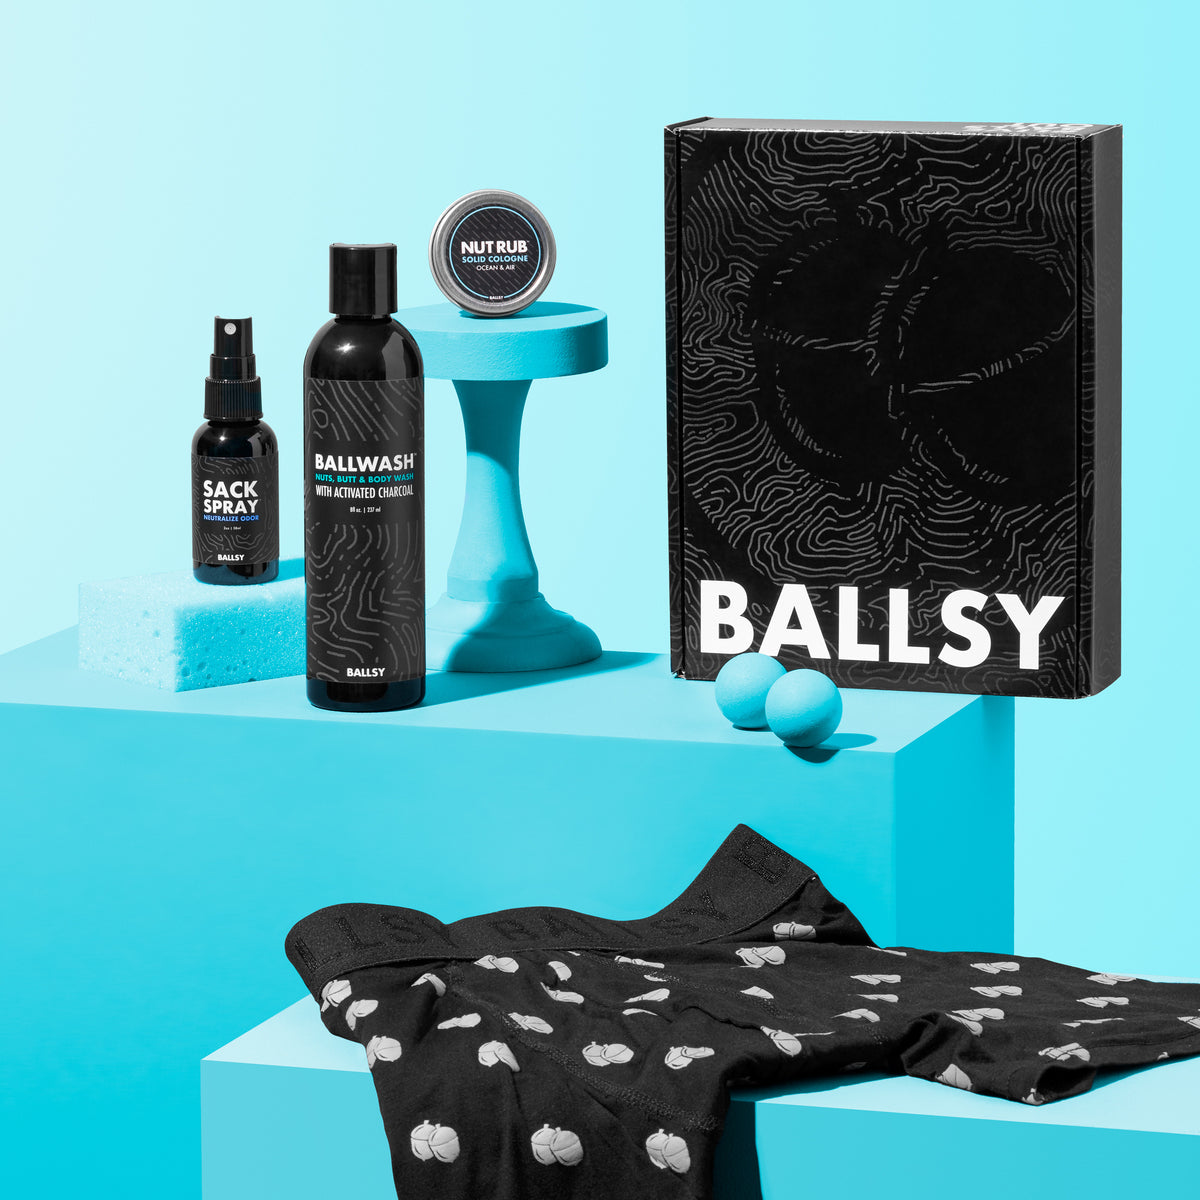 A set of personal care items from Ballsy along with a pair of underwear.